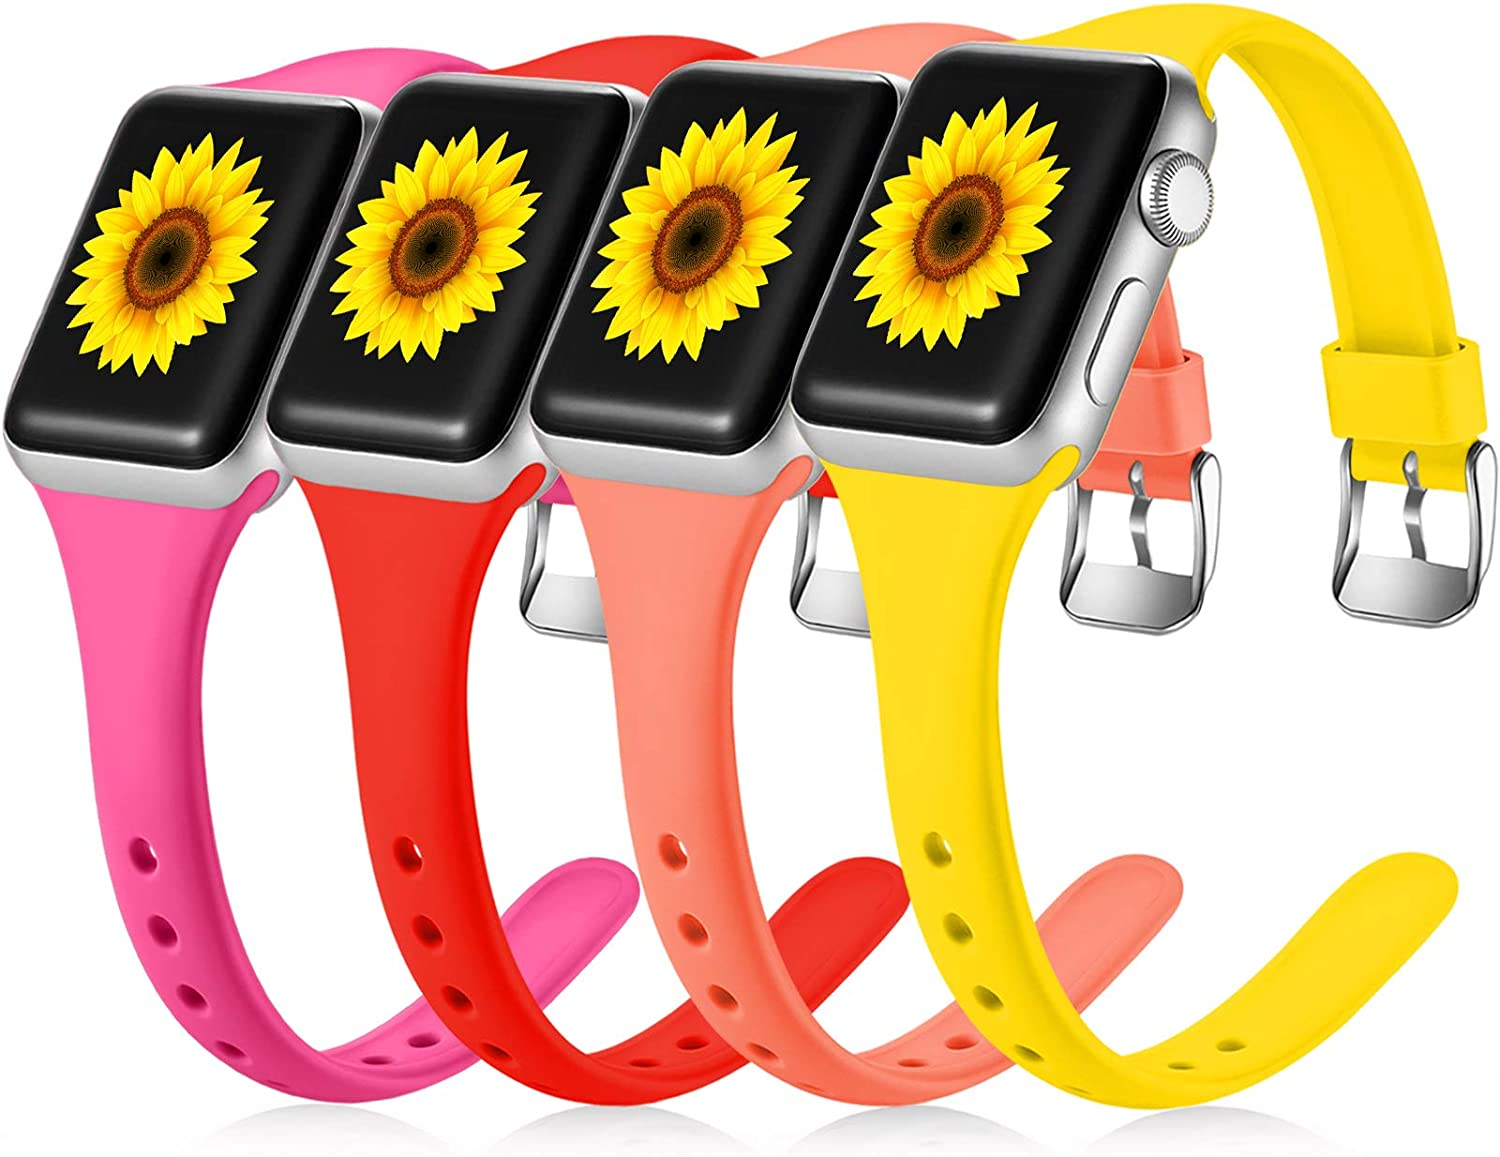 Laffav 4 Pack Sport Bands Compatible with Apple Watch 38mm 40mm for Women Men, Cute Narrow Soft Silicone Slim Thin Small Replacement Wristband Compatible with iWatch SE Series 6 5 4 3 2 1